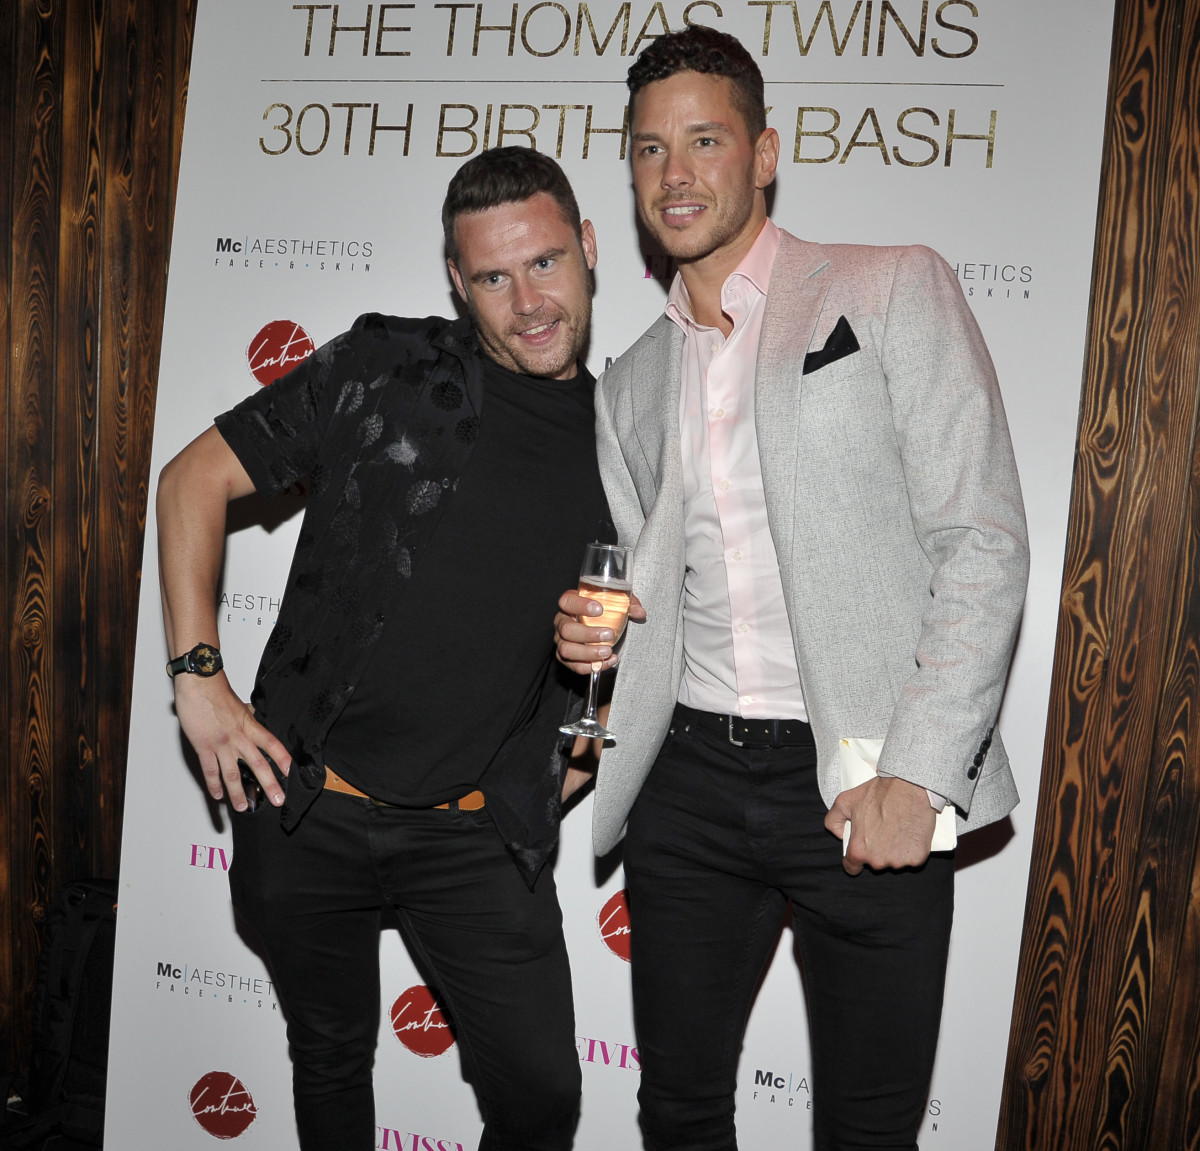 Danny Miller and Scott Thomas at his and Adam's bday bash